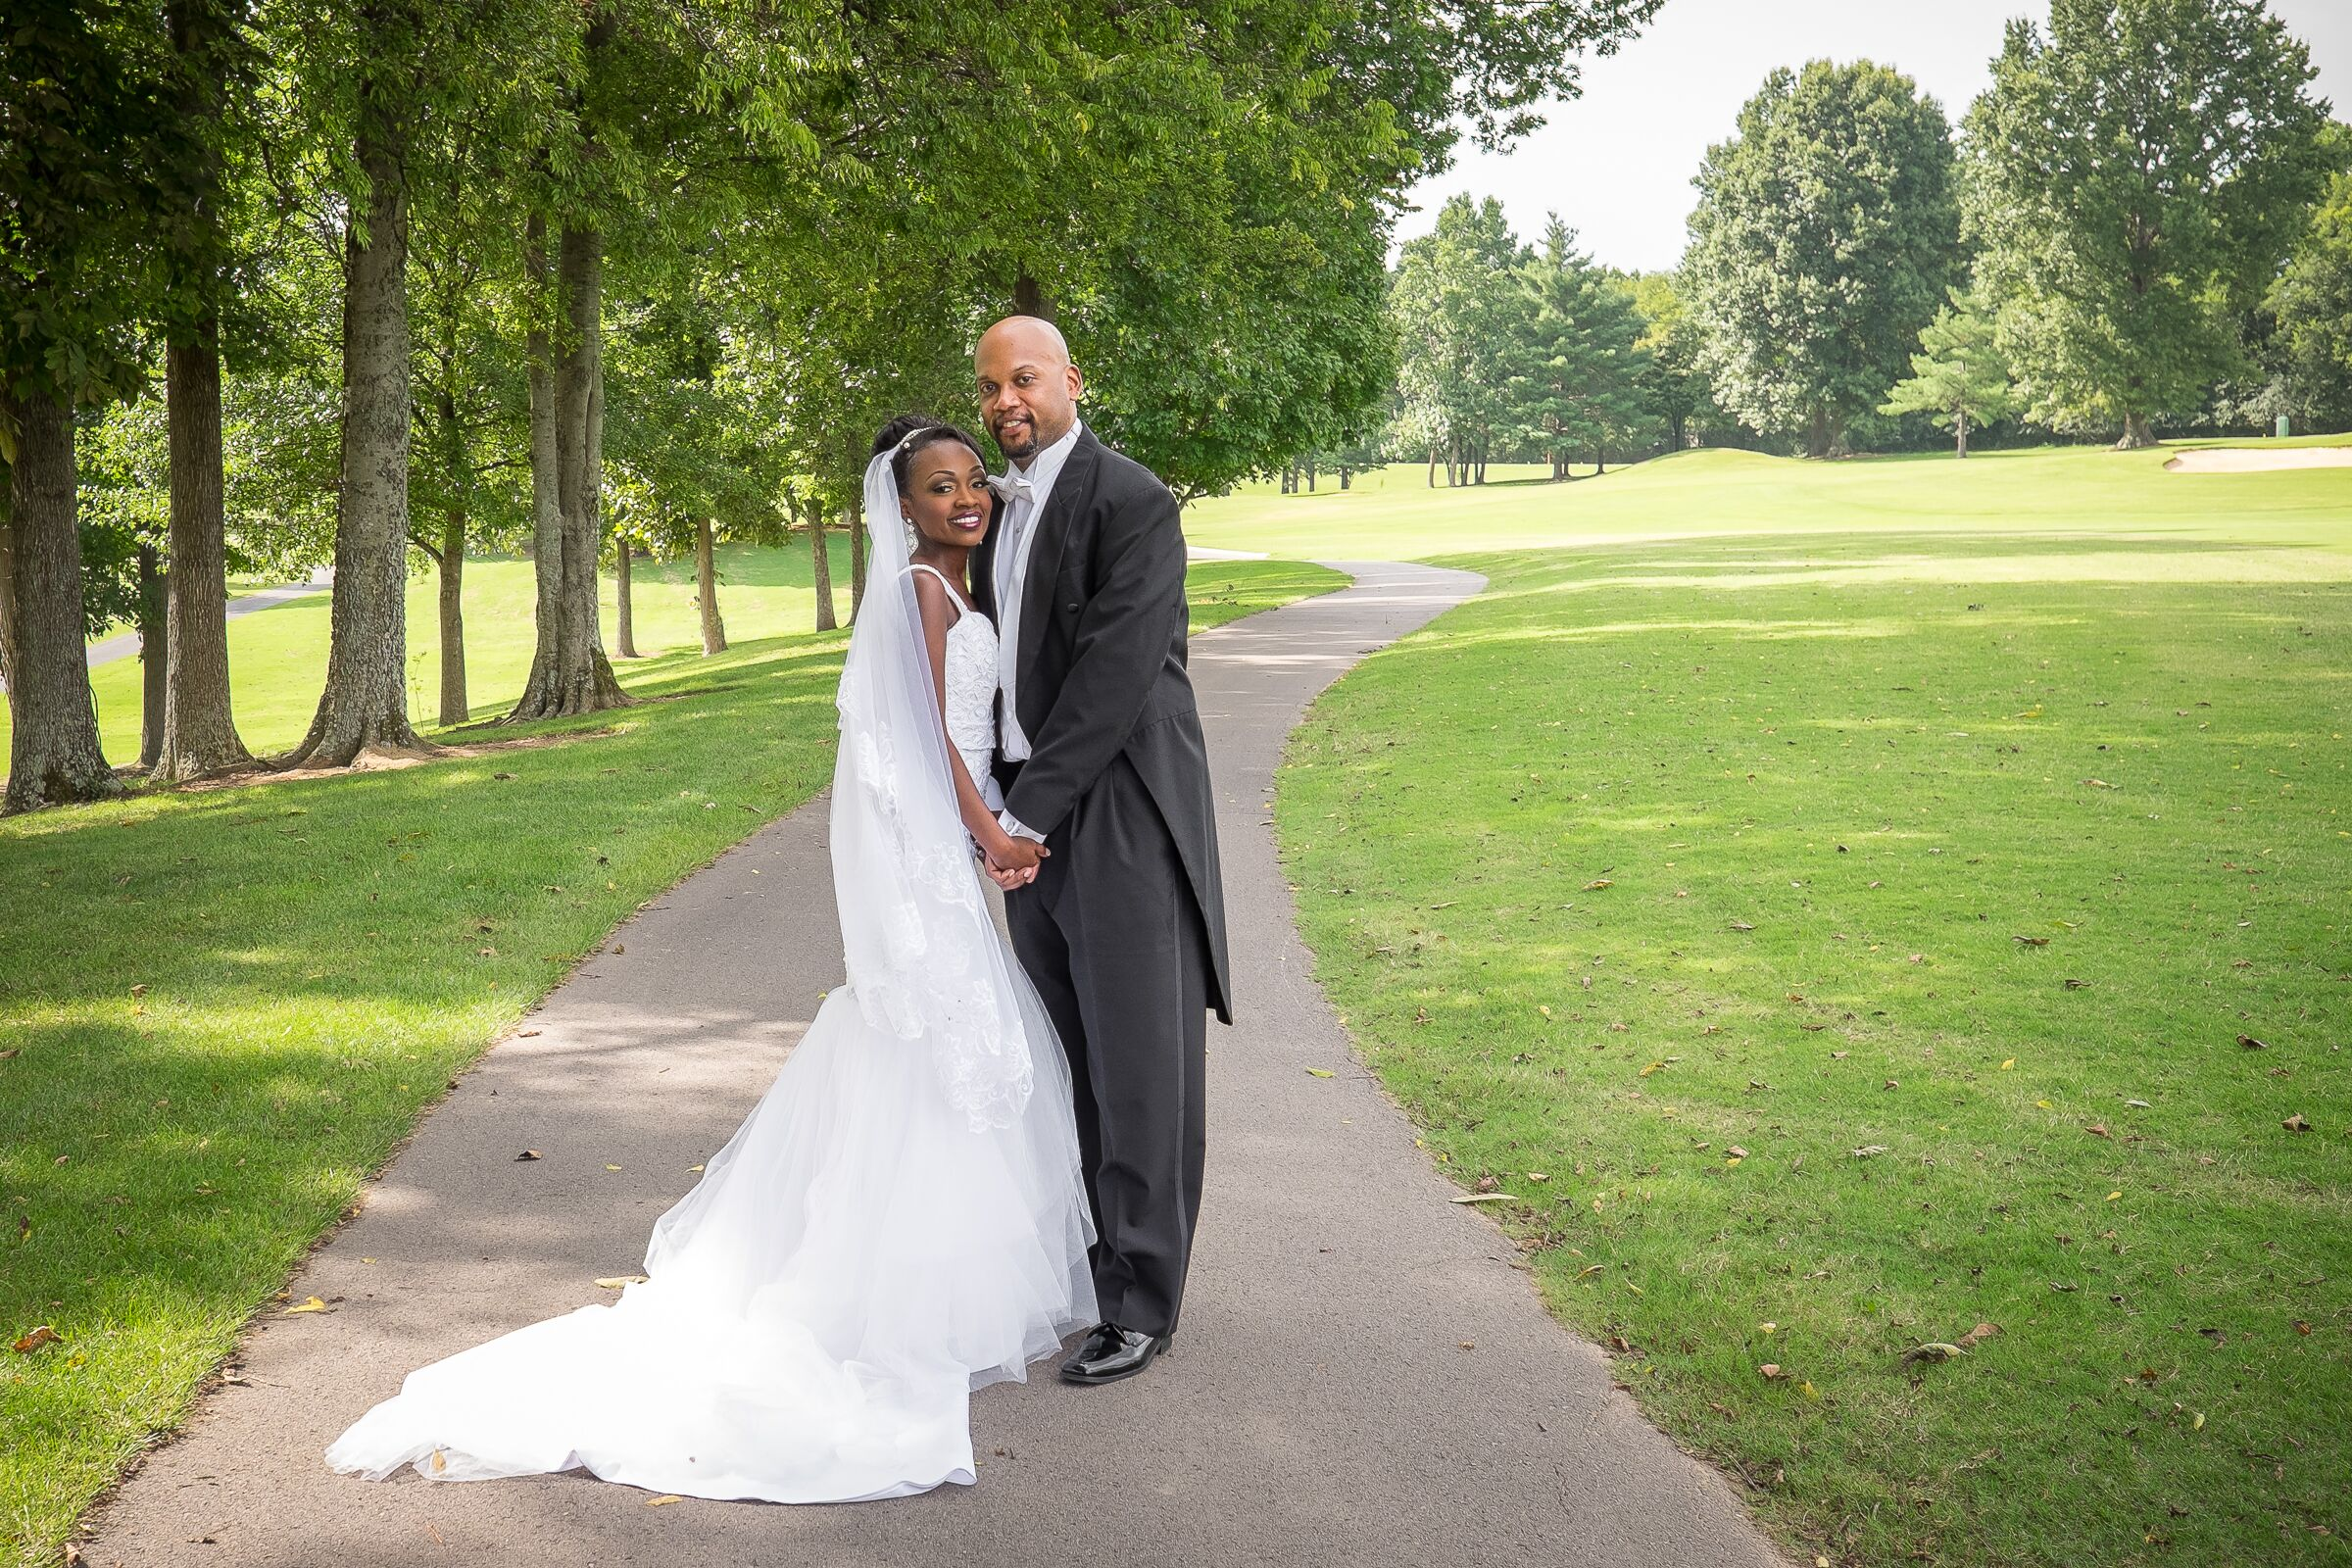 A chic romantic wedding at hermitage golf course in old for A new day salon hermitage tn